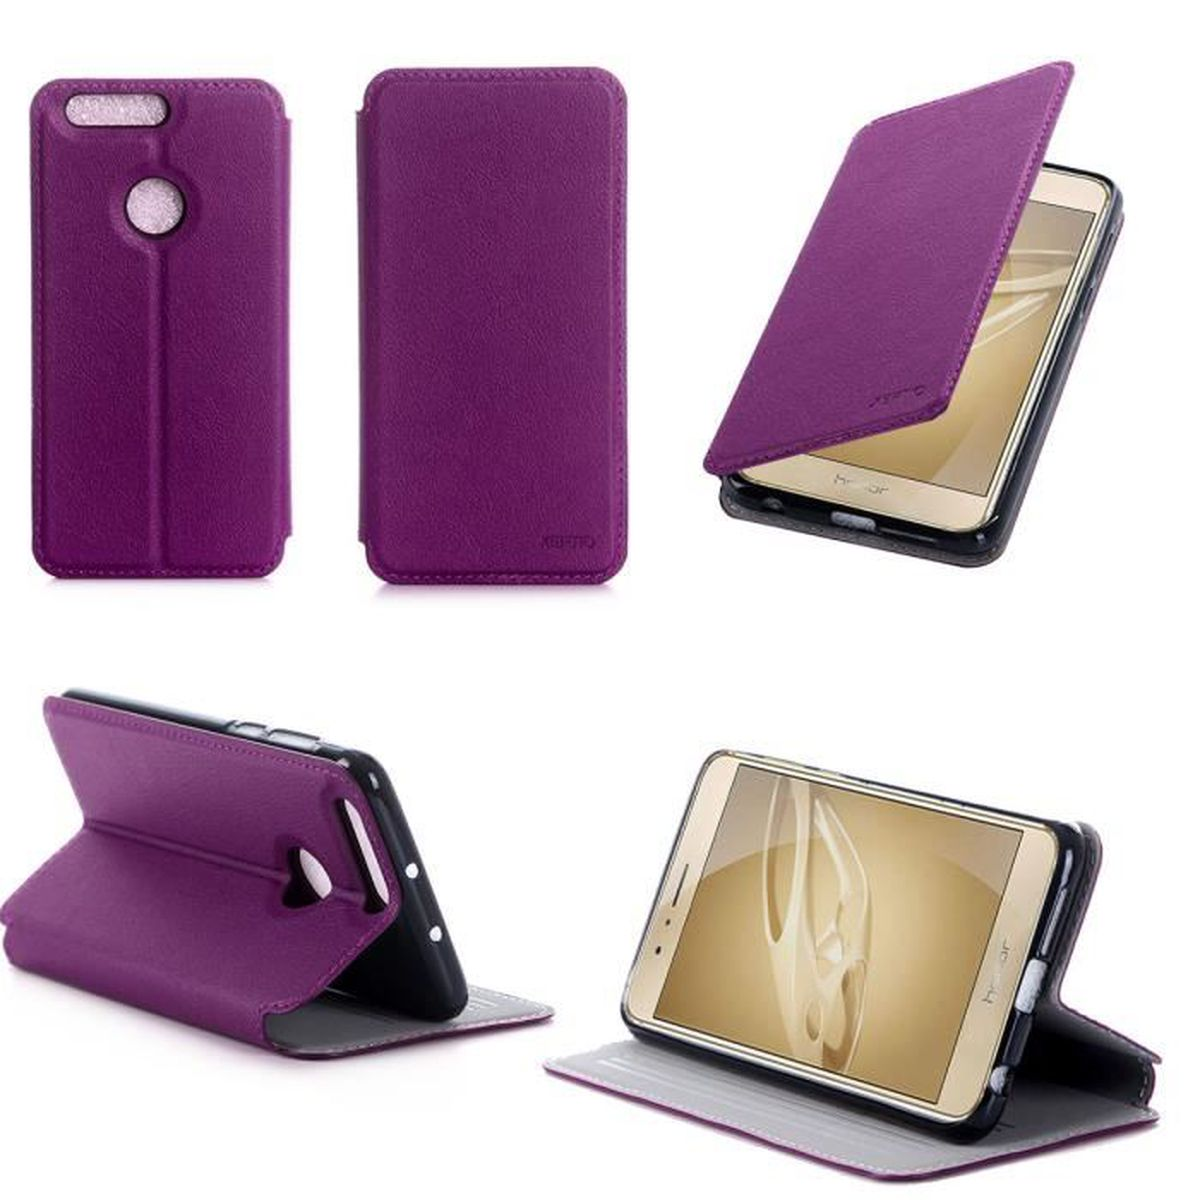 Etui coque huawei honor 8 4g violet housse pochette for Housse honor 8